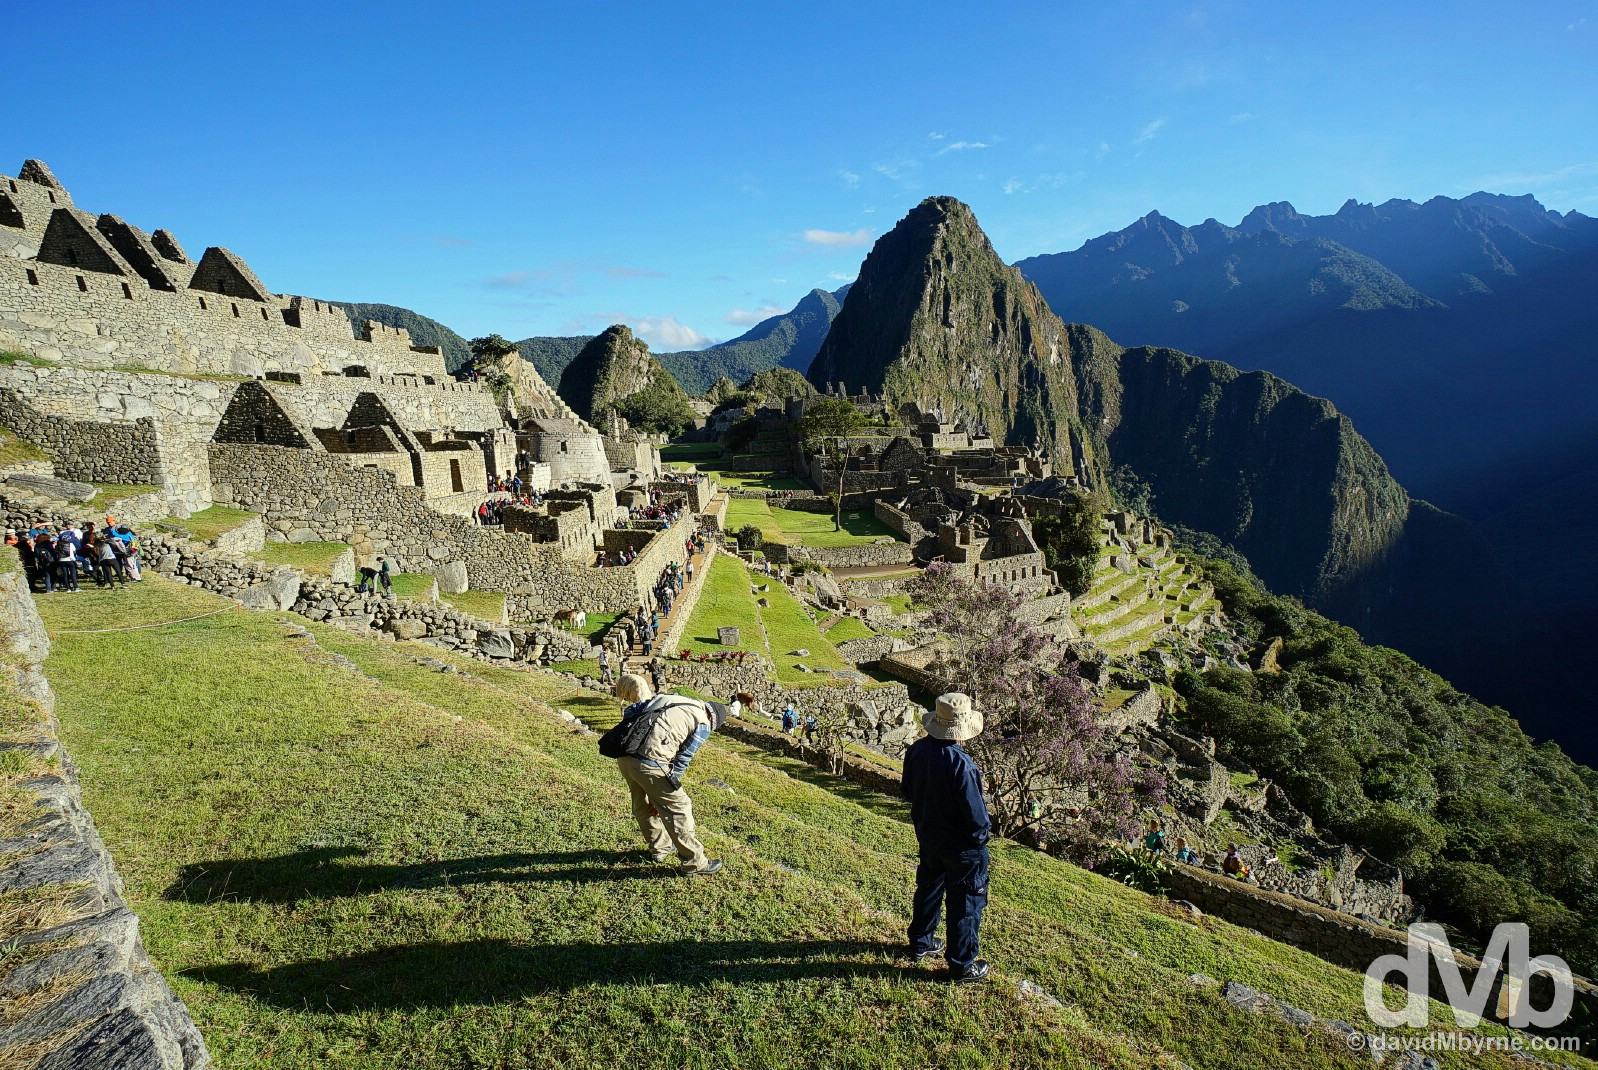 Watching sunrise from the Eastern Agricultural Sector terraces in Machu Picchu, Peru. August 15, 2015.